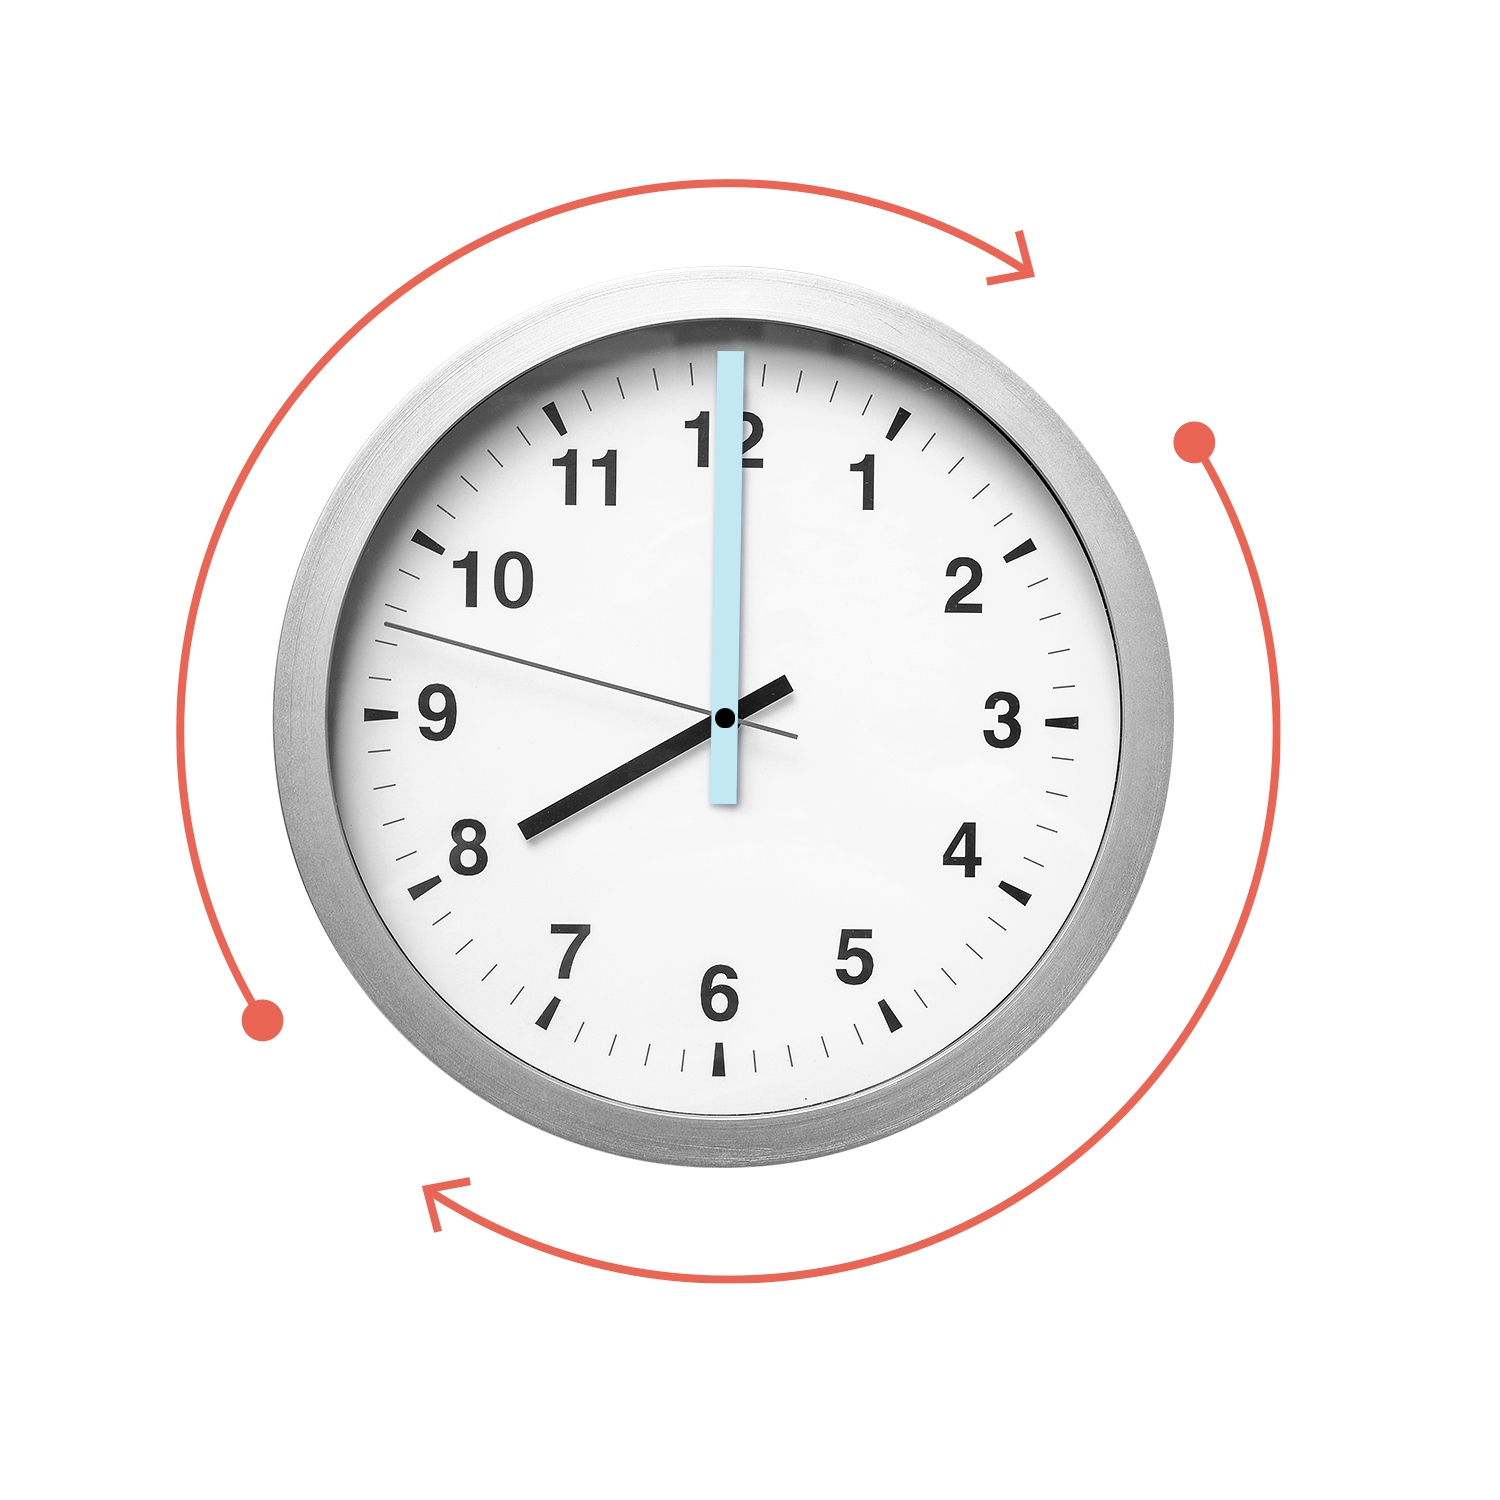 image clock saving time in reporting concept graphic